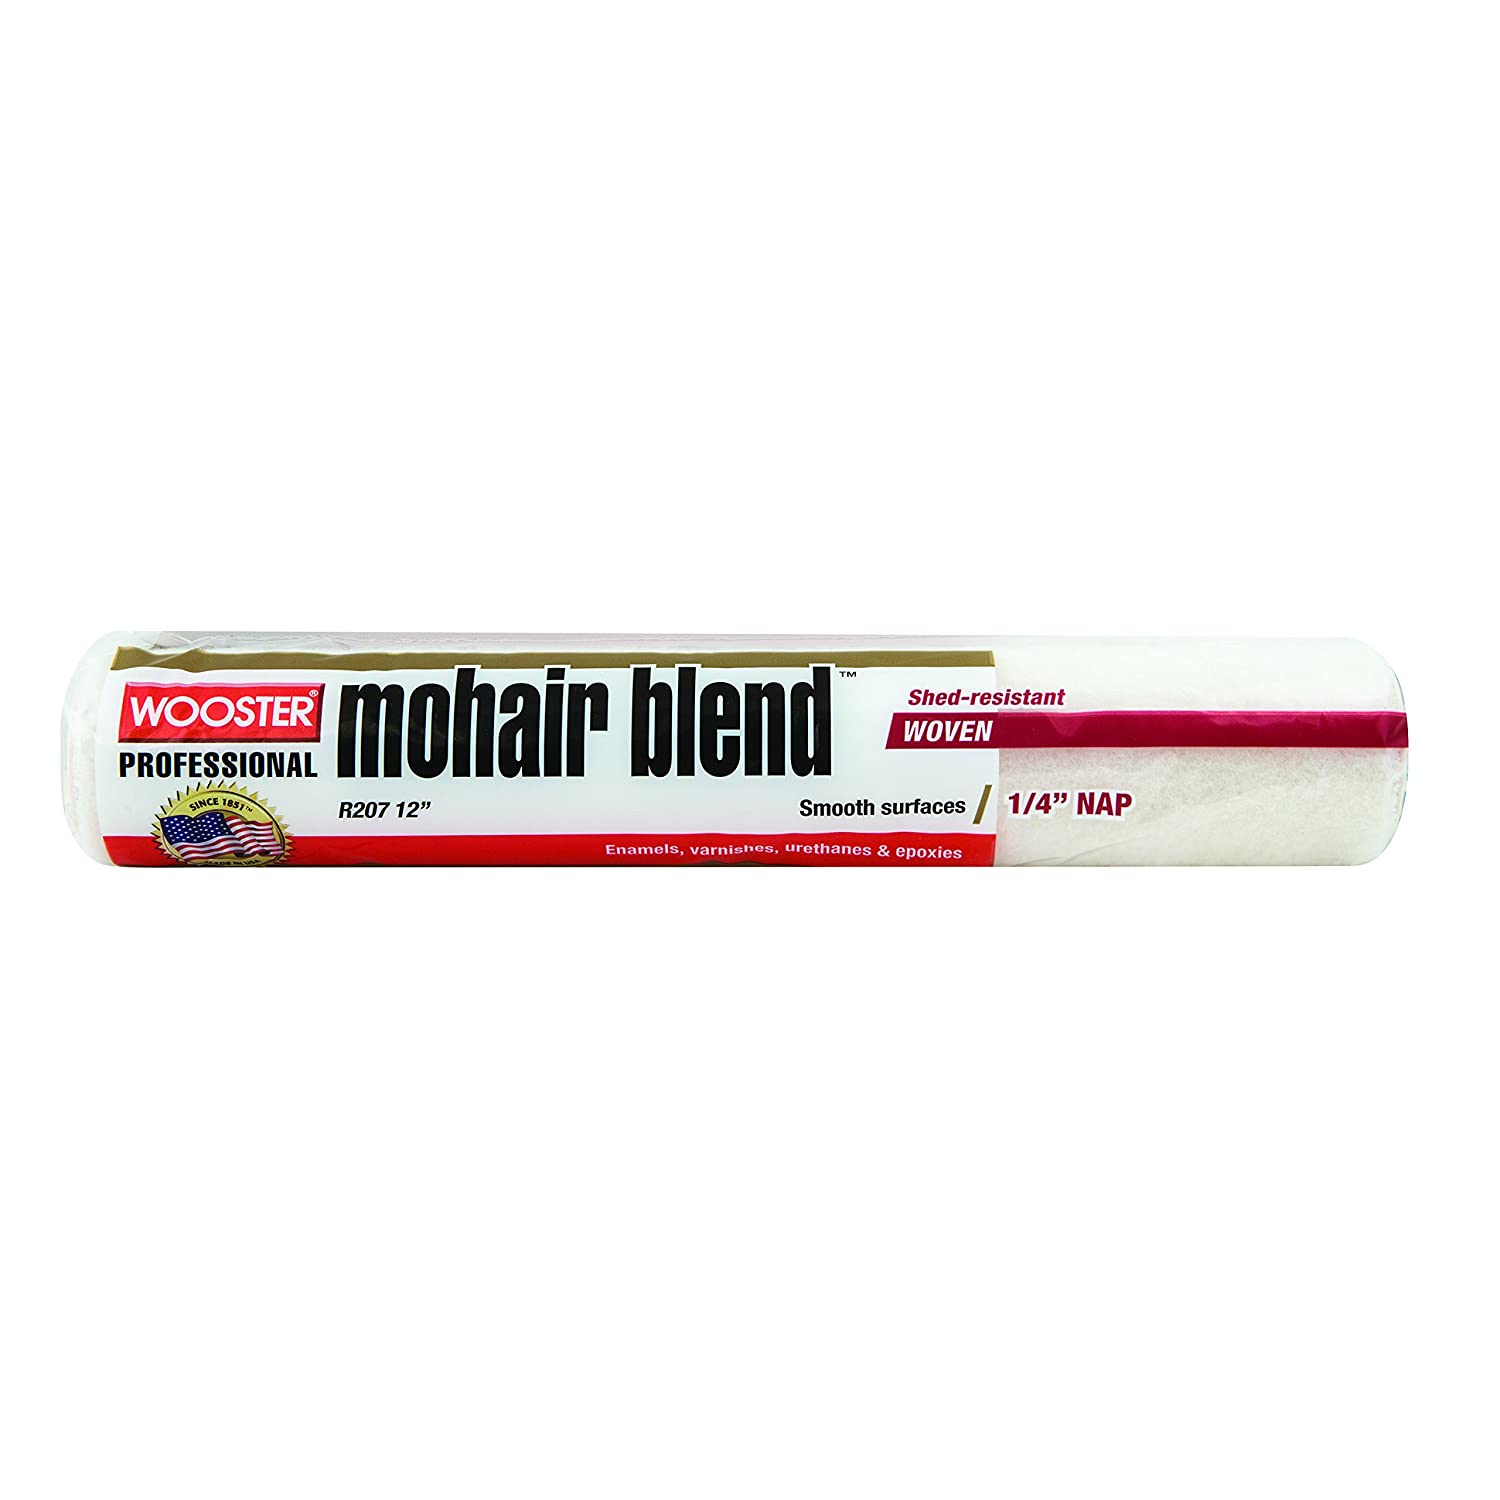 Wooster Brush R207-4 Mohair Blend Roller Cover 1/4-Inch Nap, 4-Inch